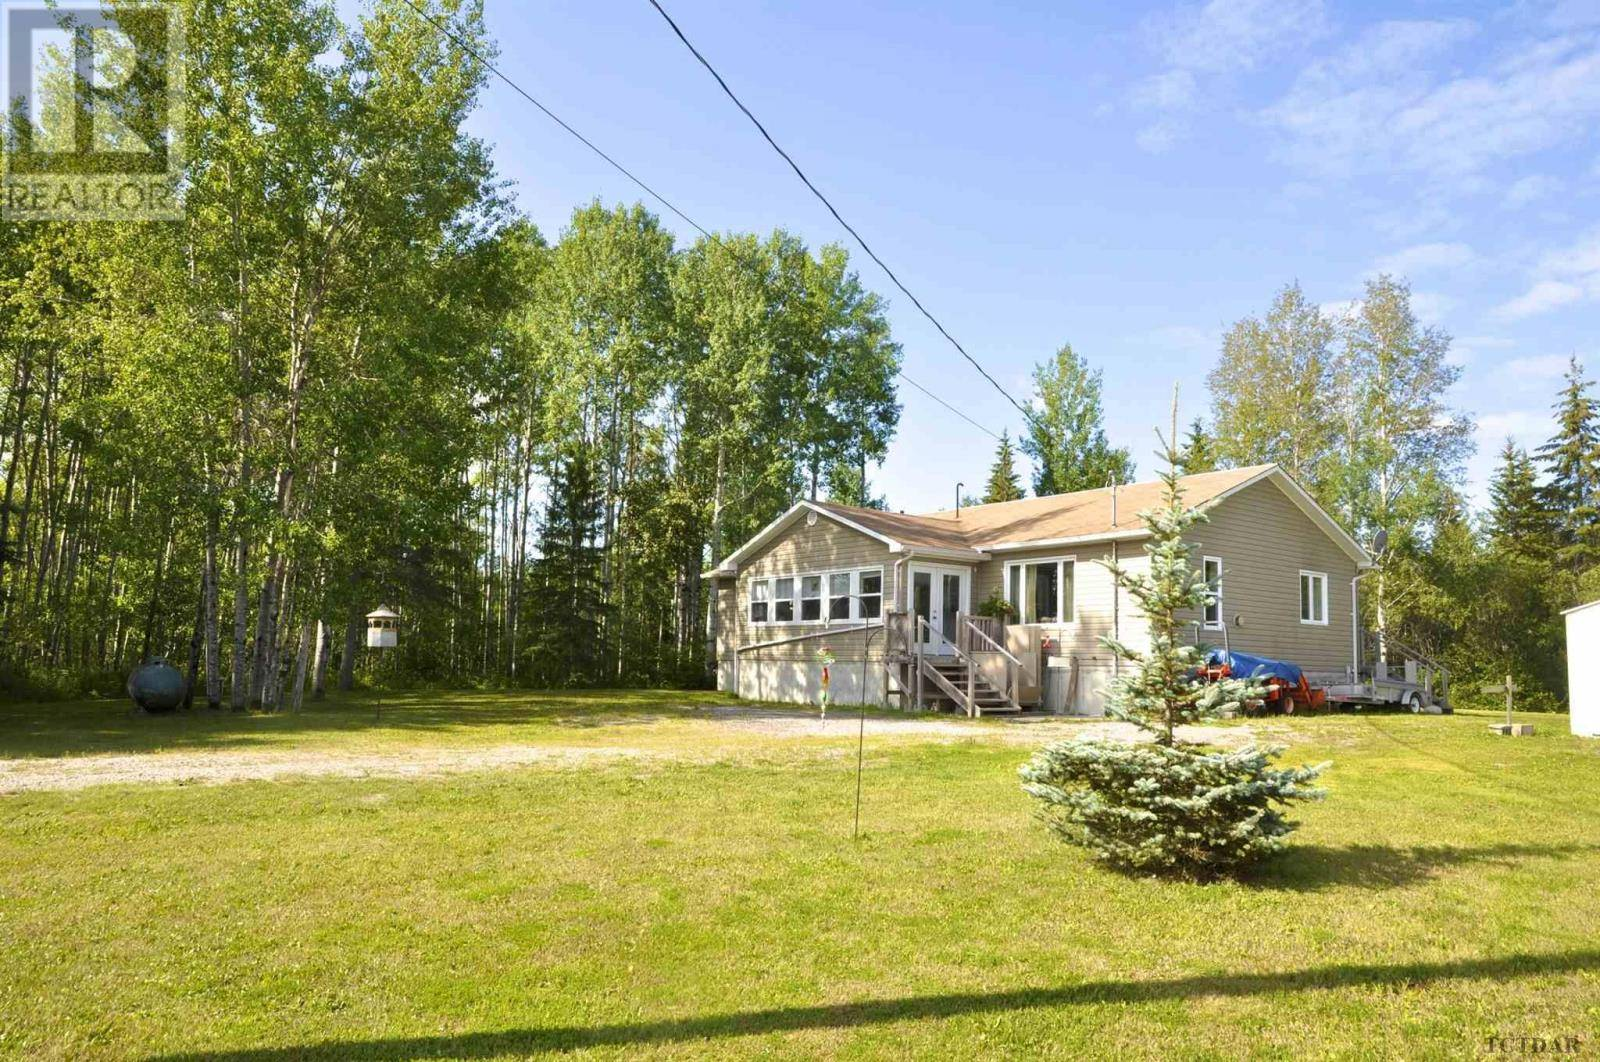 House for sale at 6 Lot C Henwood Road Rd Unit 11 Henwood Twp Ontario - MLS: TM192012